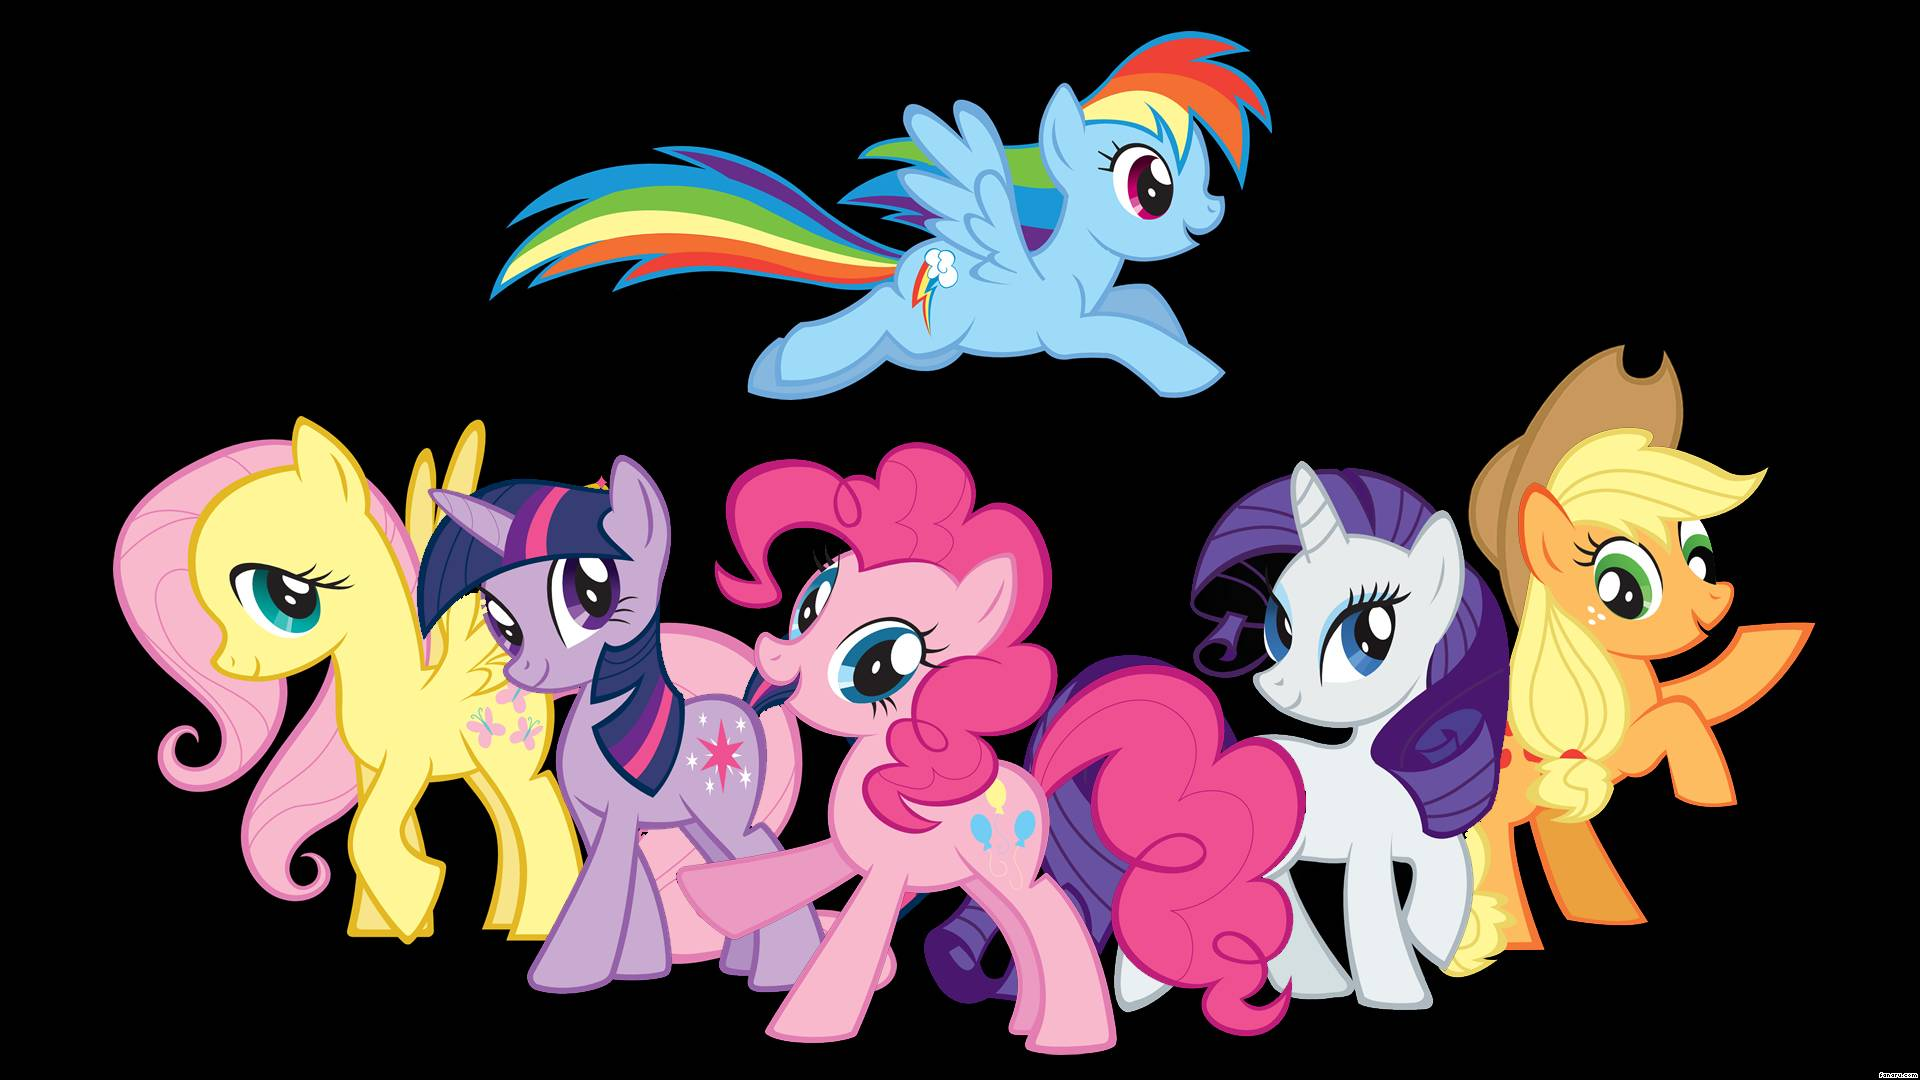 High Resolution Wallpaper | My Little Pony: Friendship Is Magic 1920x1080 px